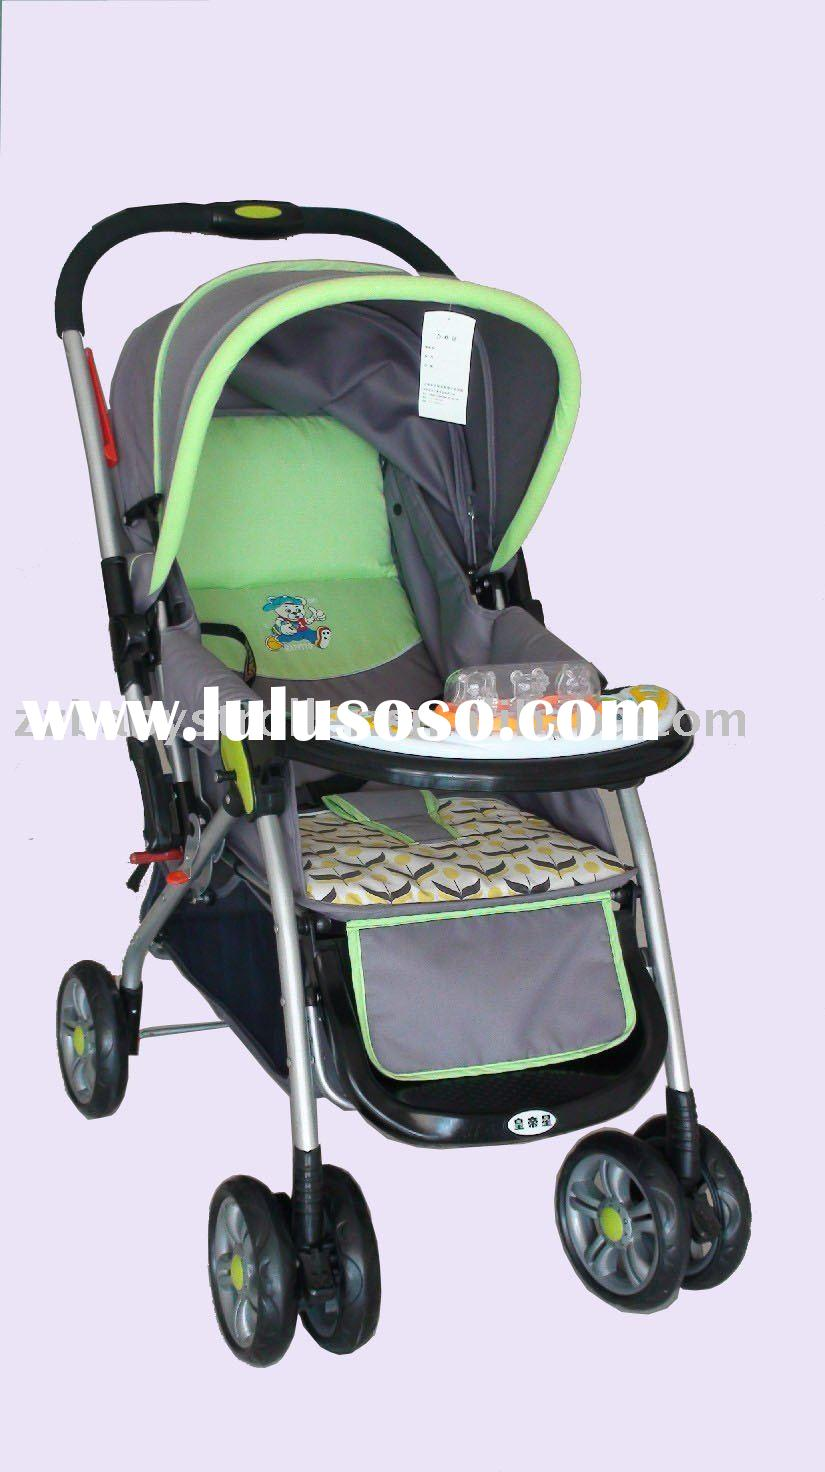 Baby stroller & baby items